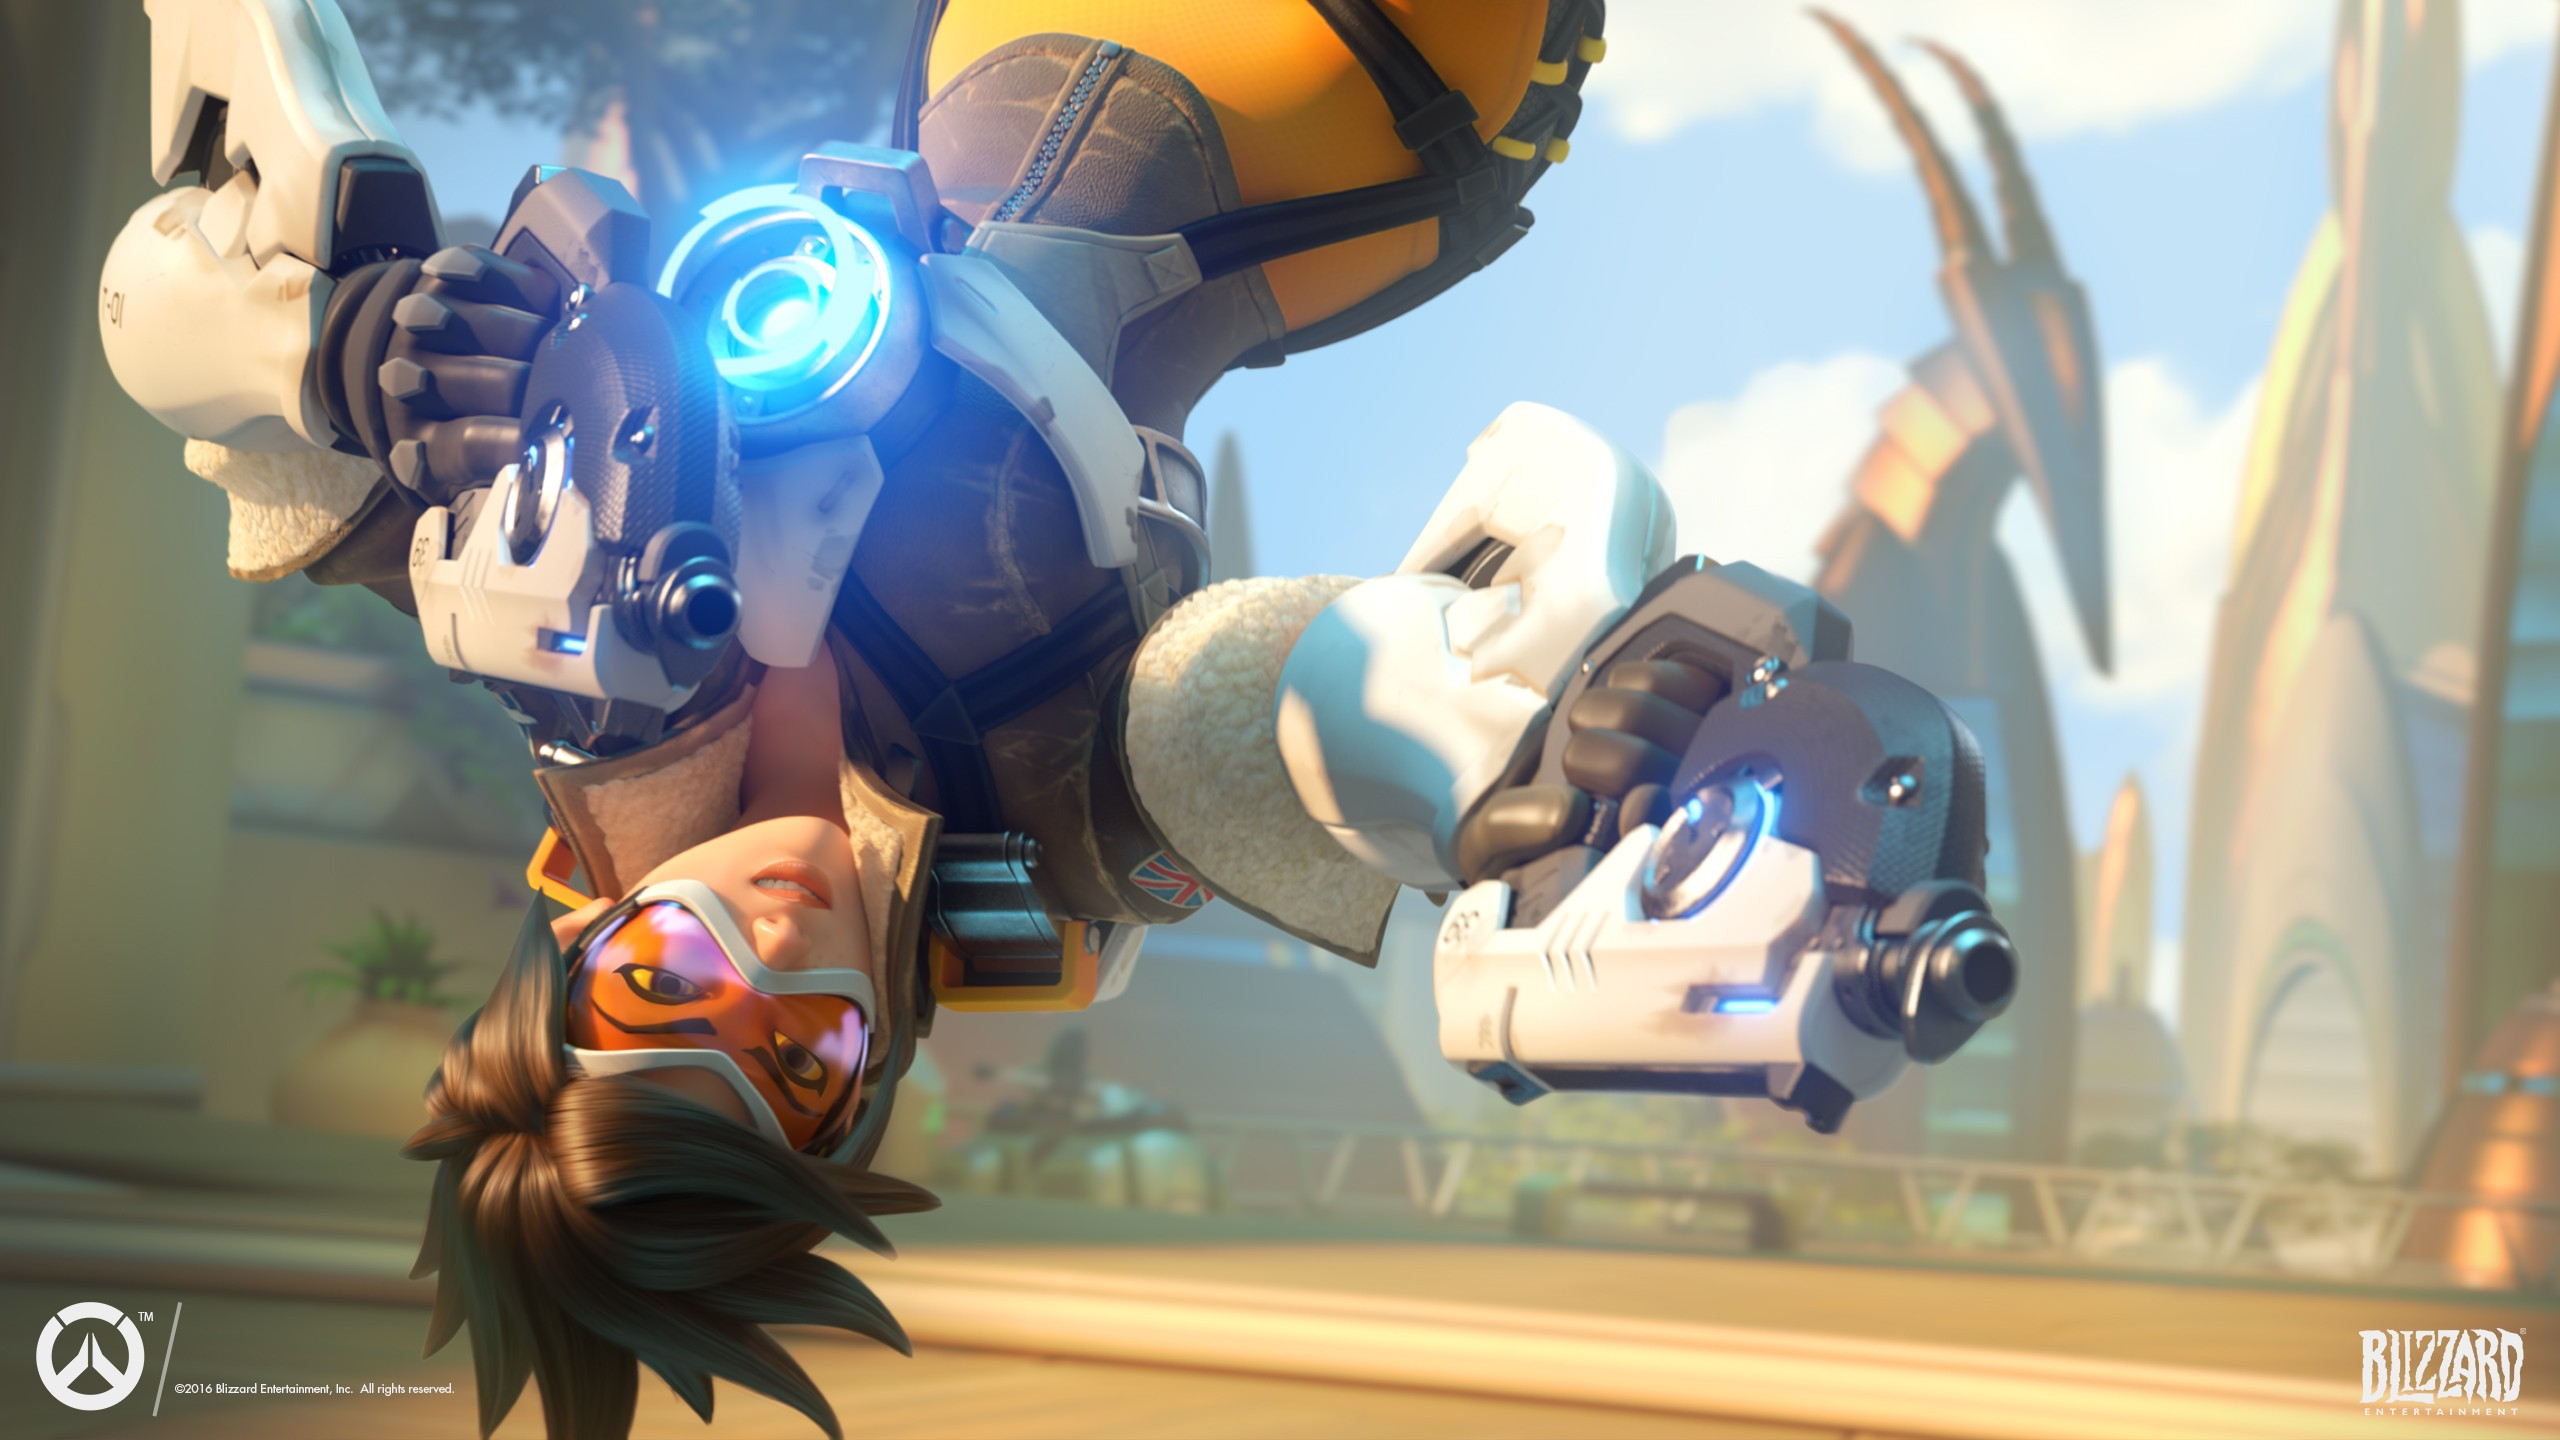 Overwatch wallpaper 1080p ·① Download free cool High ...